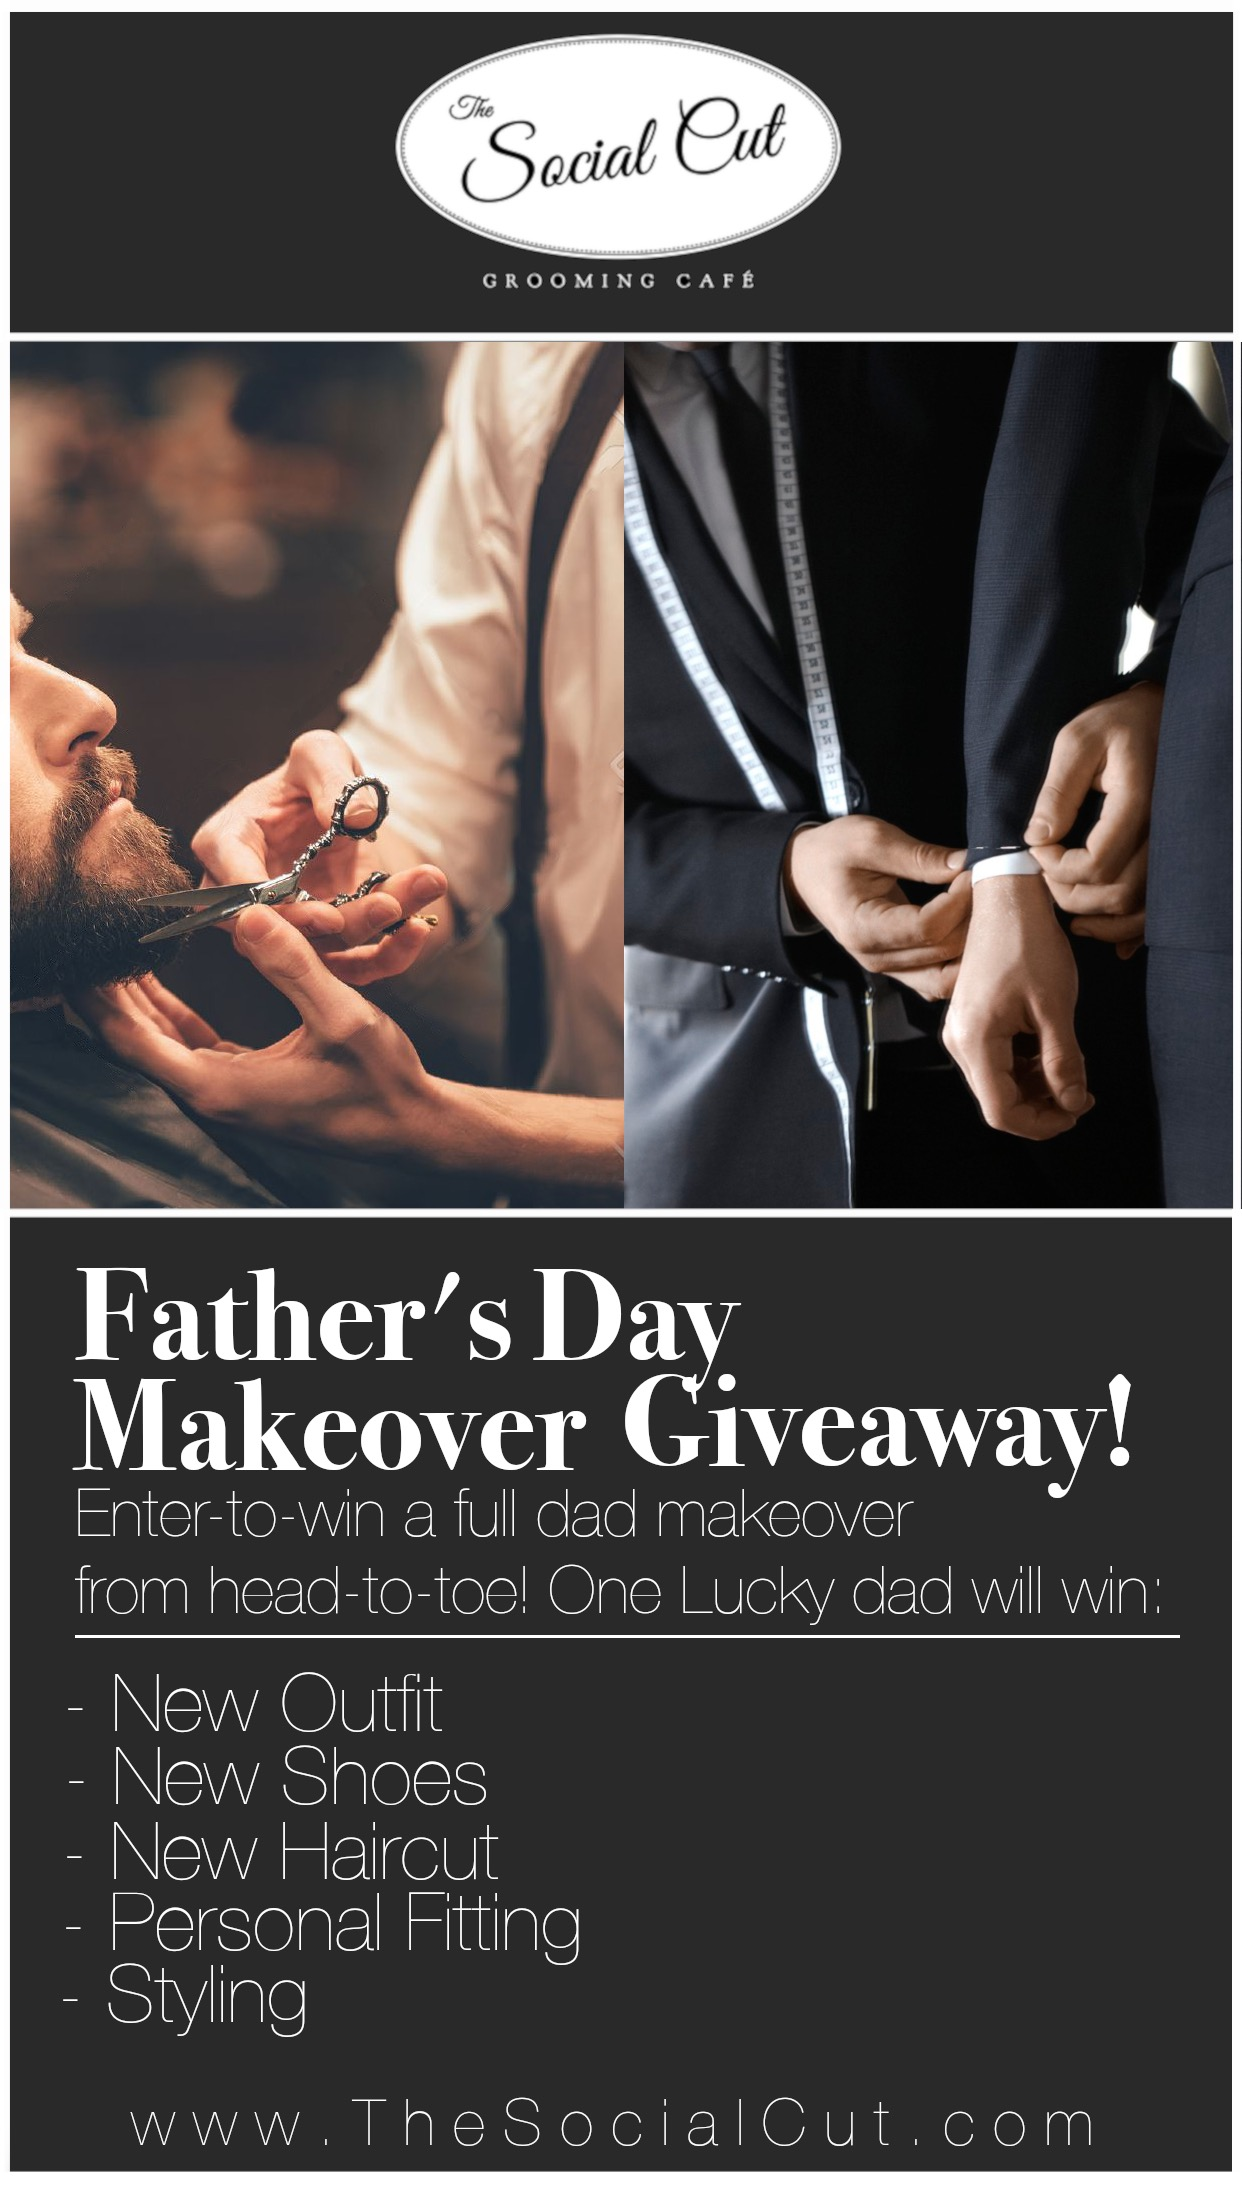 Fathers Day Giveaway- - FATHER'S DAY MAKEOVER GIVEAWAY!!!The Social Cut is giving one lucky father a full dad makeover from head-to-toe! Now is your opportunity to treat your dad or yourself for a change!RULES TO ENTER:1. Follow @thesocialcut & @jorge1valles on Instagram2.Tag 1 friend in the comments3. That's it!Winner will be announced on Father's Day, June 16th!